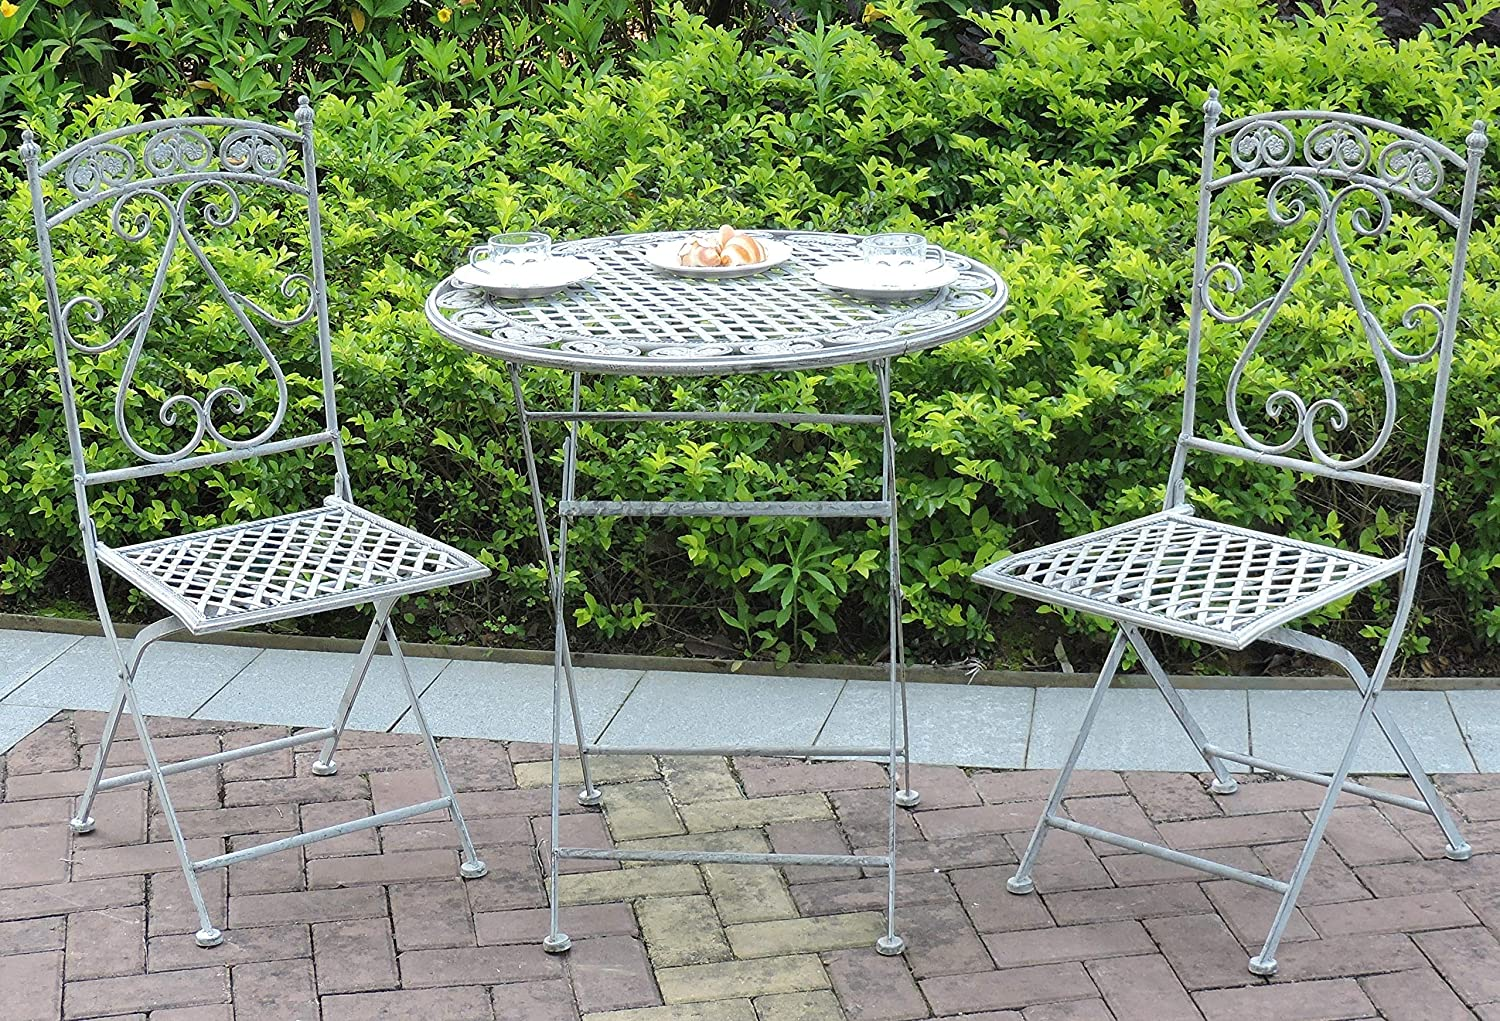 GlamHaus Garden Bistro Set 3 Piece Outdoor Metal Foldable Patio Balcony Furniture Shabby Chic Toulouse Antique Blue